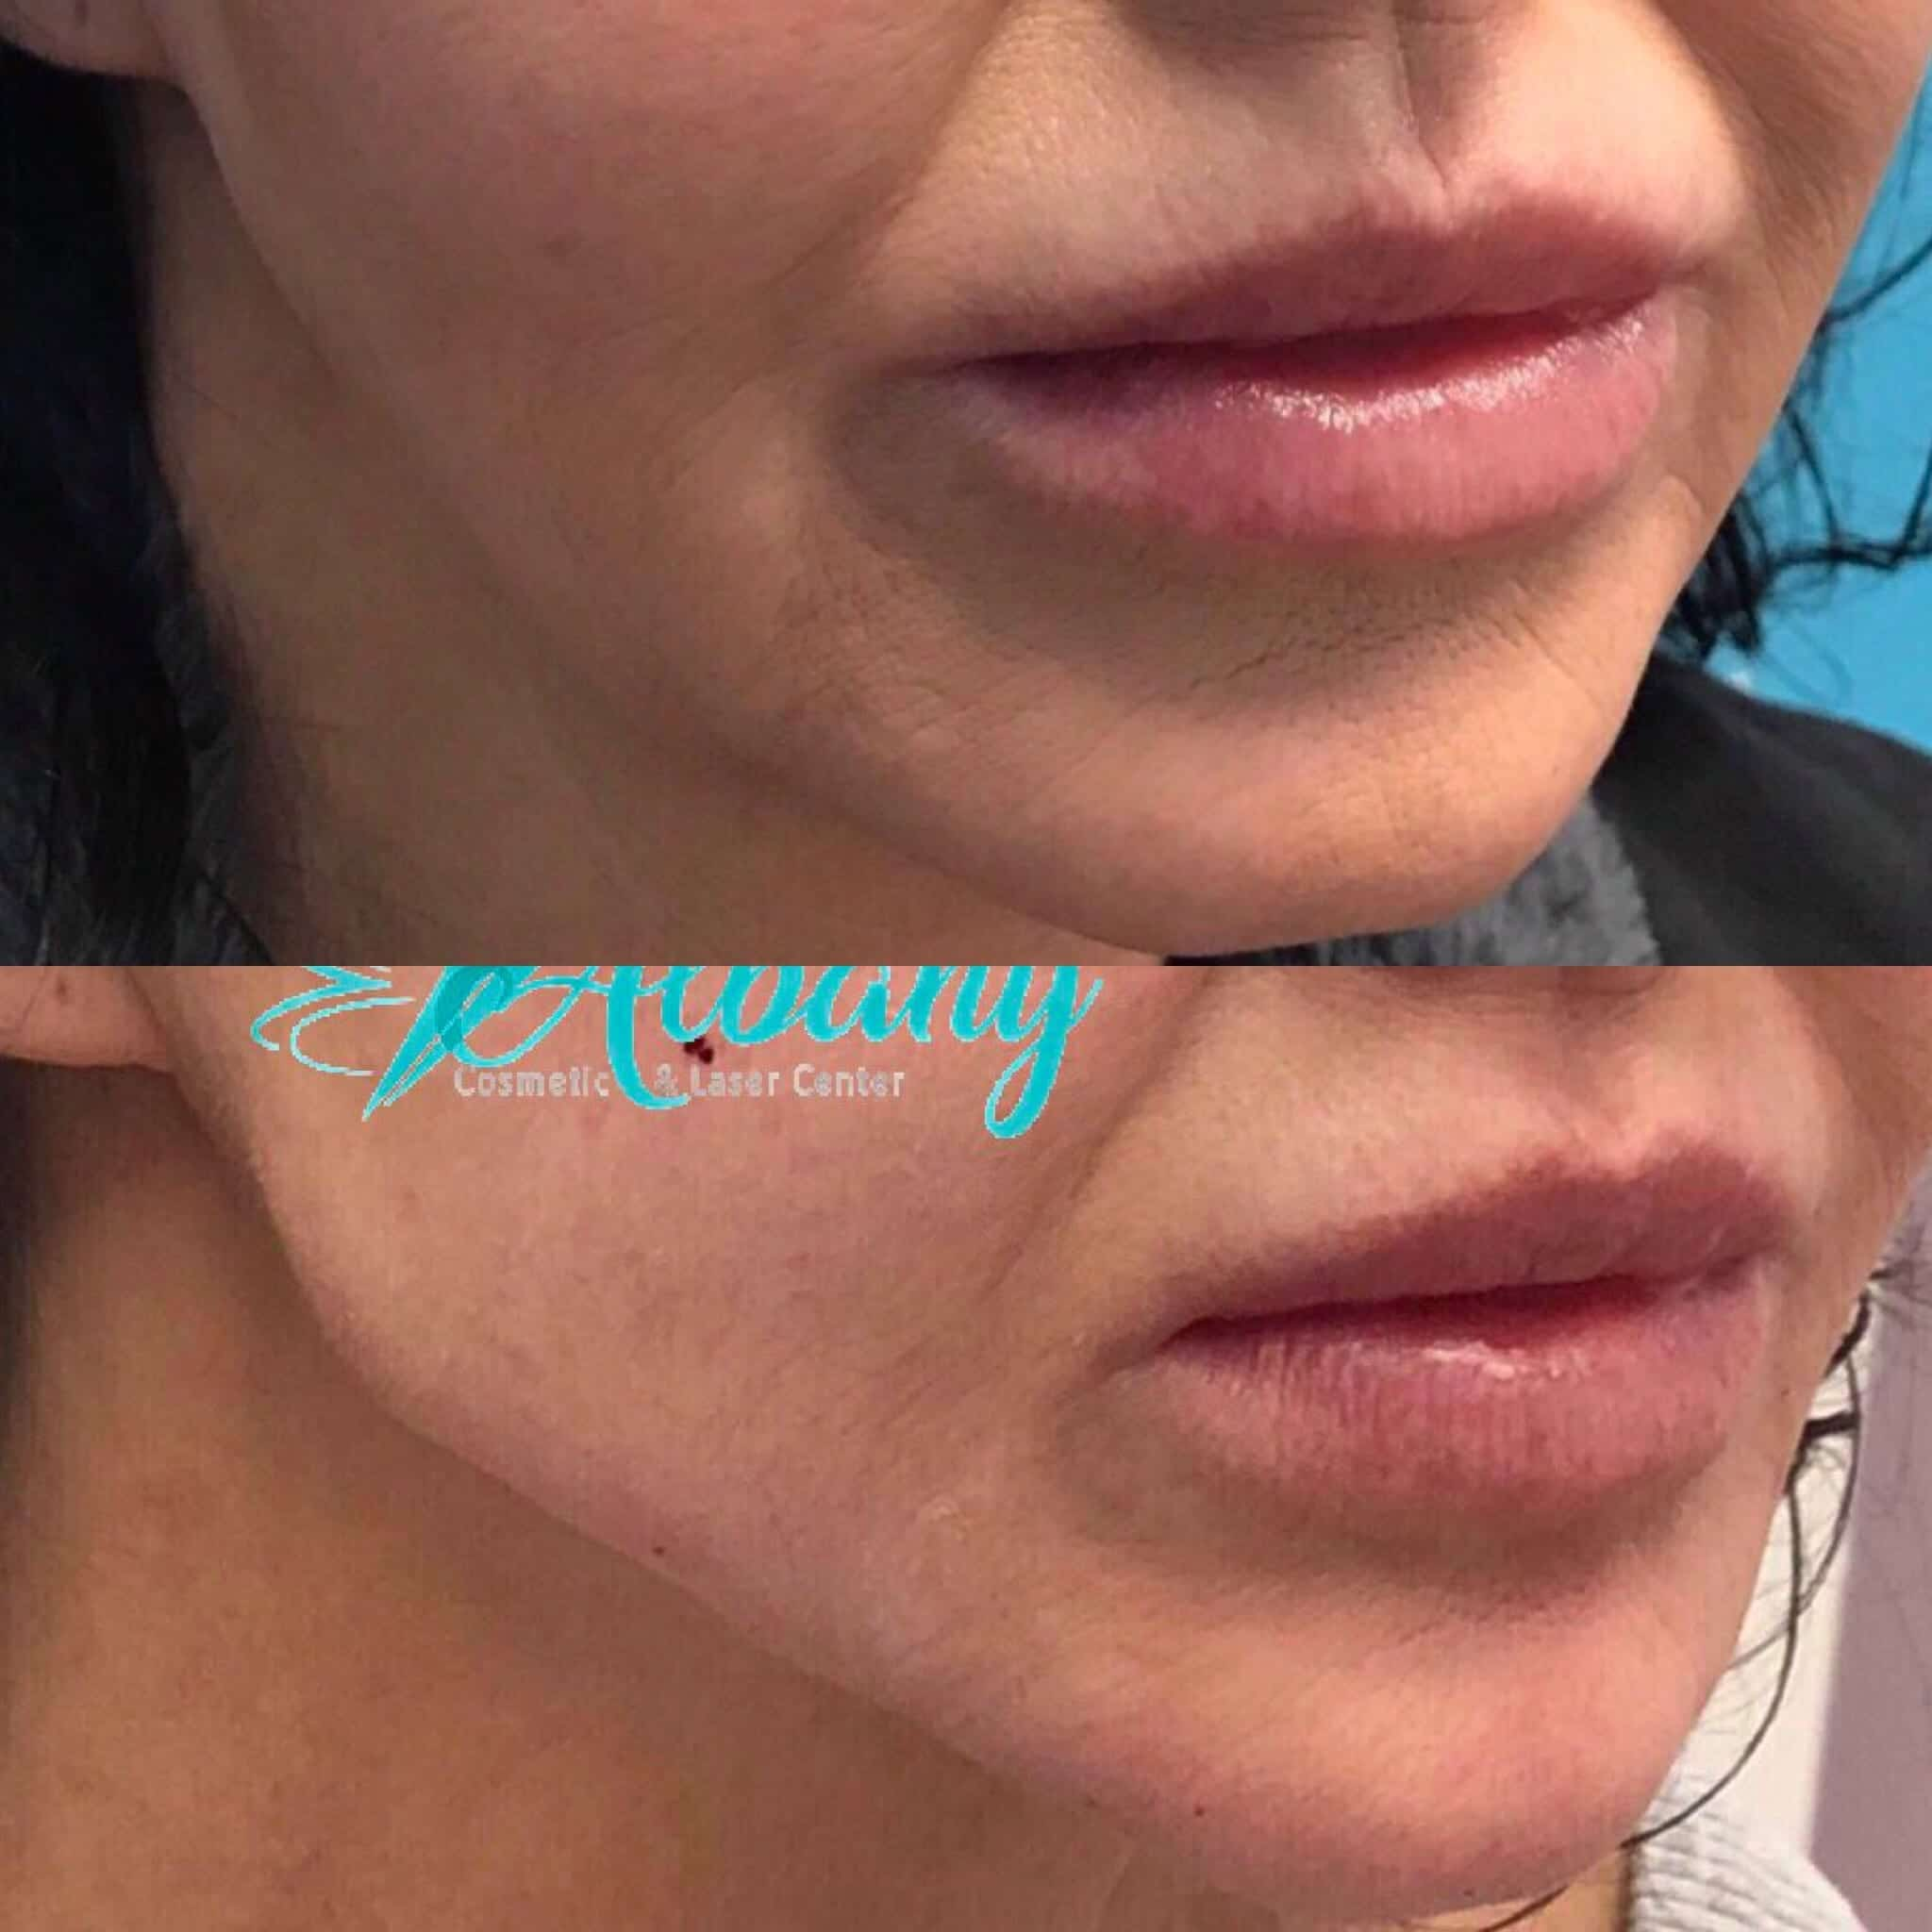 Jawline contouring with Restylane in Edmonton